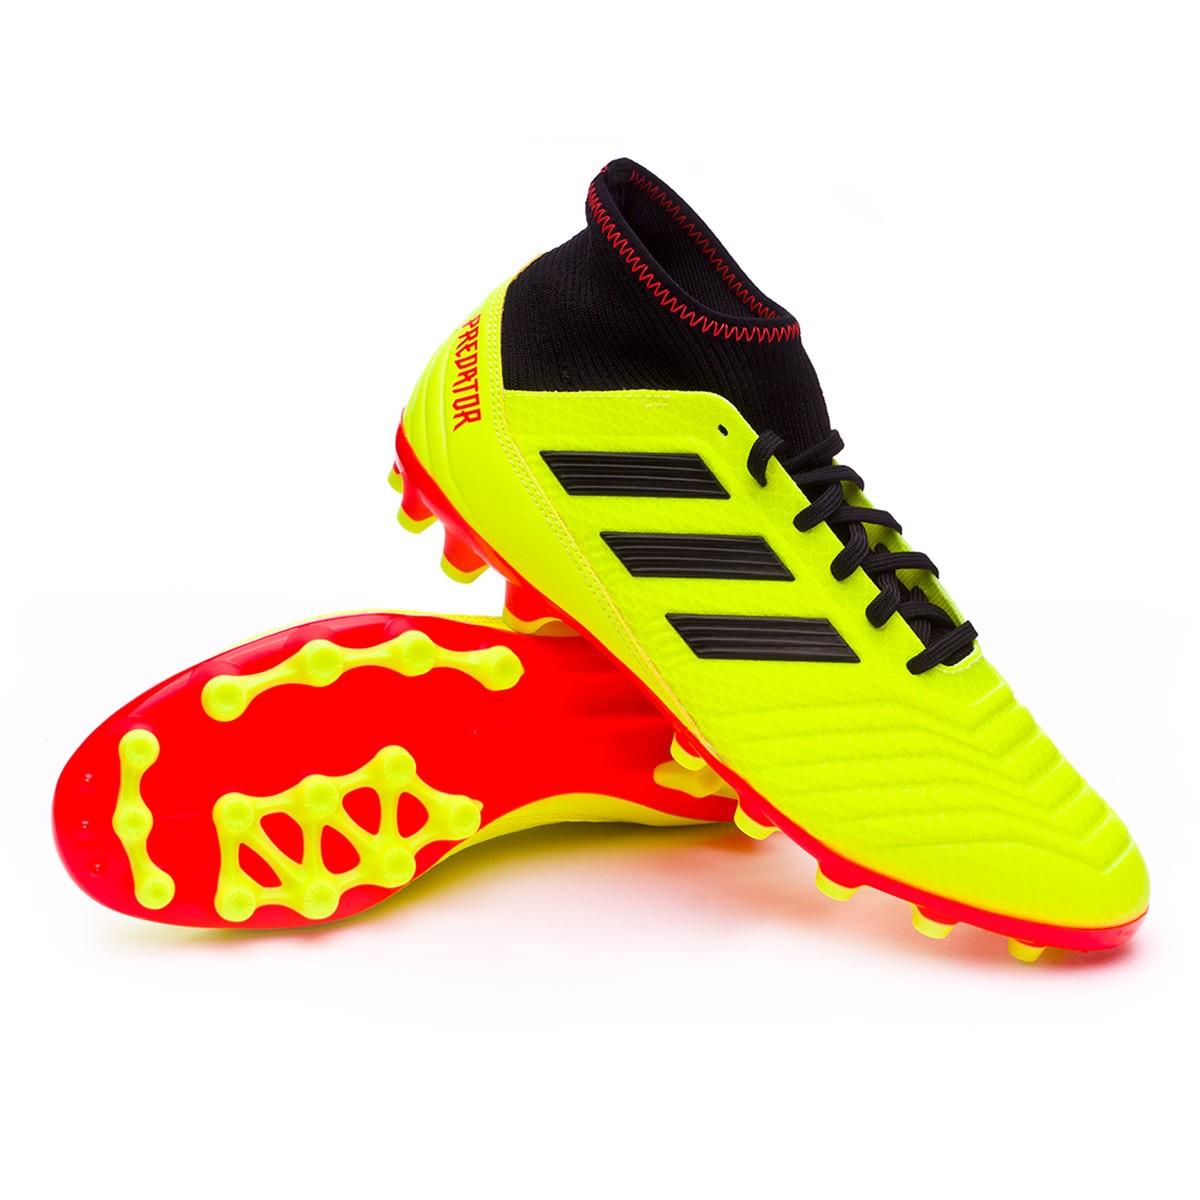 9902aa5259b2 Football Boots adidas Predator 18.3 AG Solar yellow-Black-Solar red ...